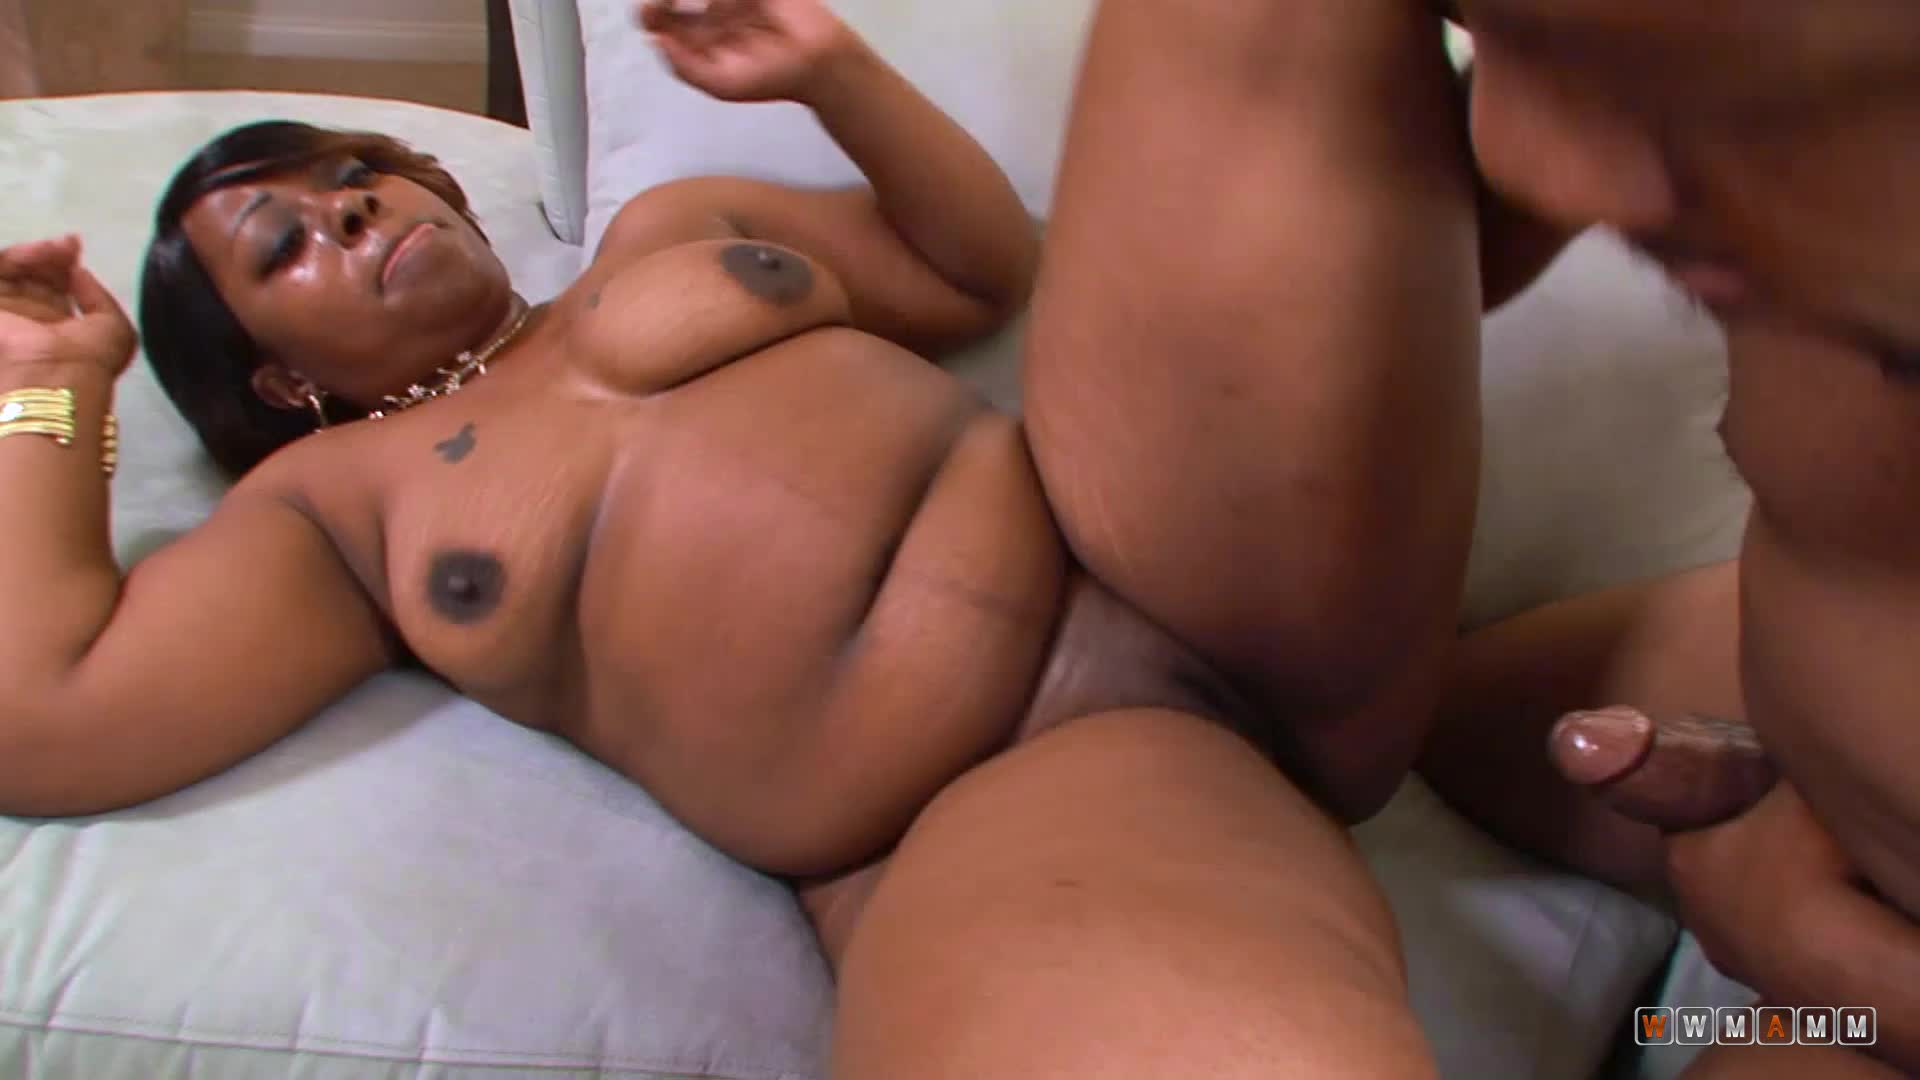 Black Family Having Fun White Cream In Wet Chocolate Pussy